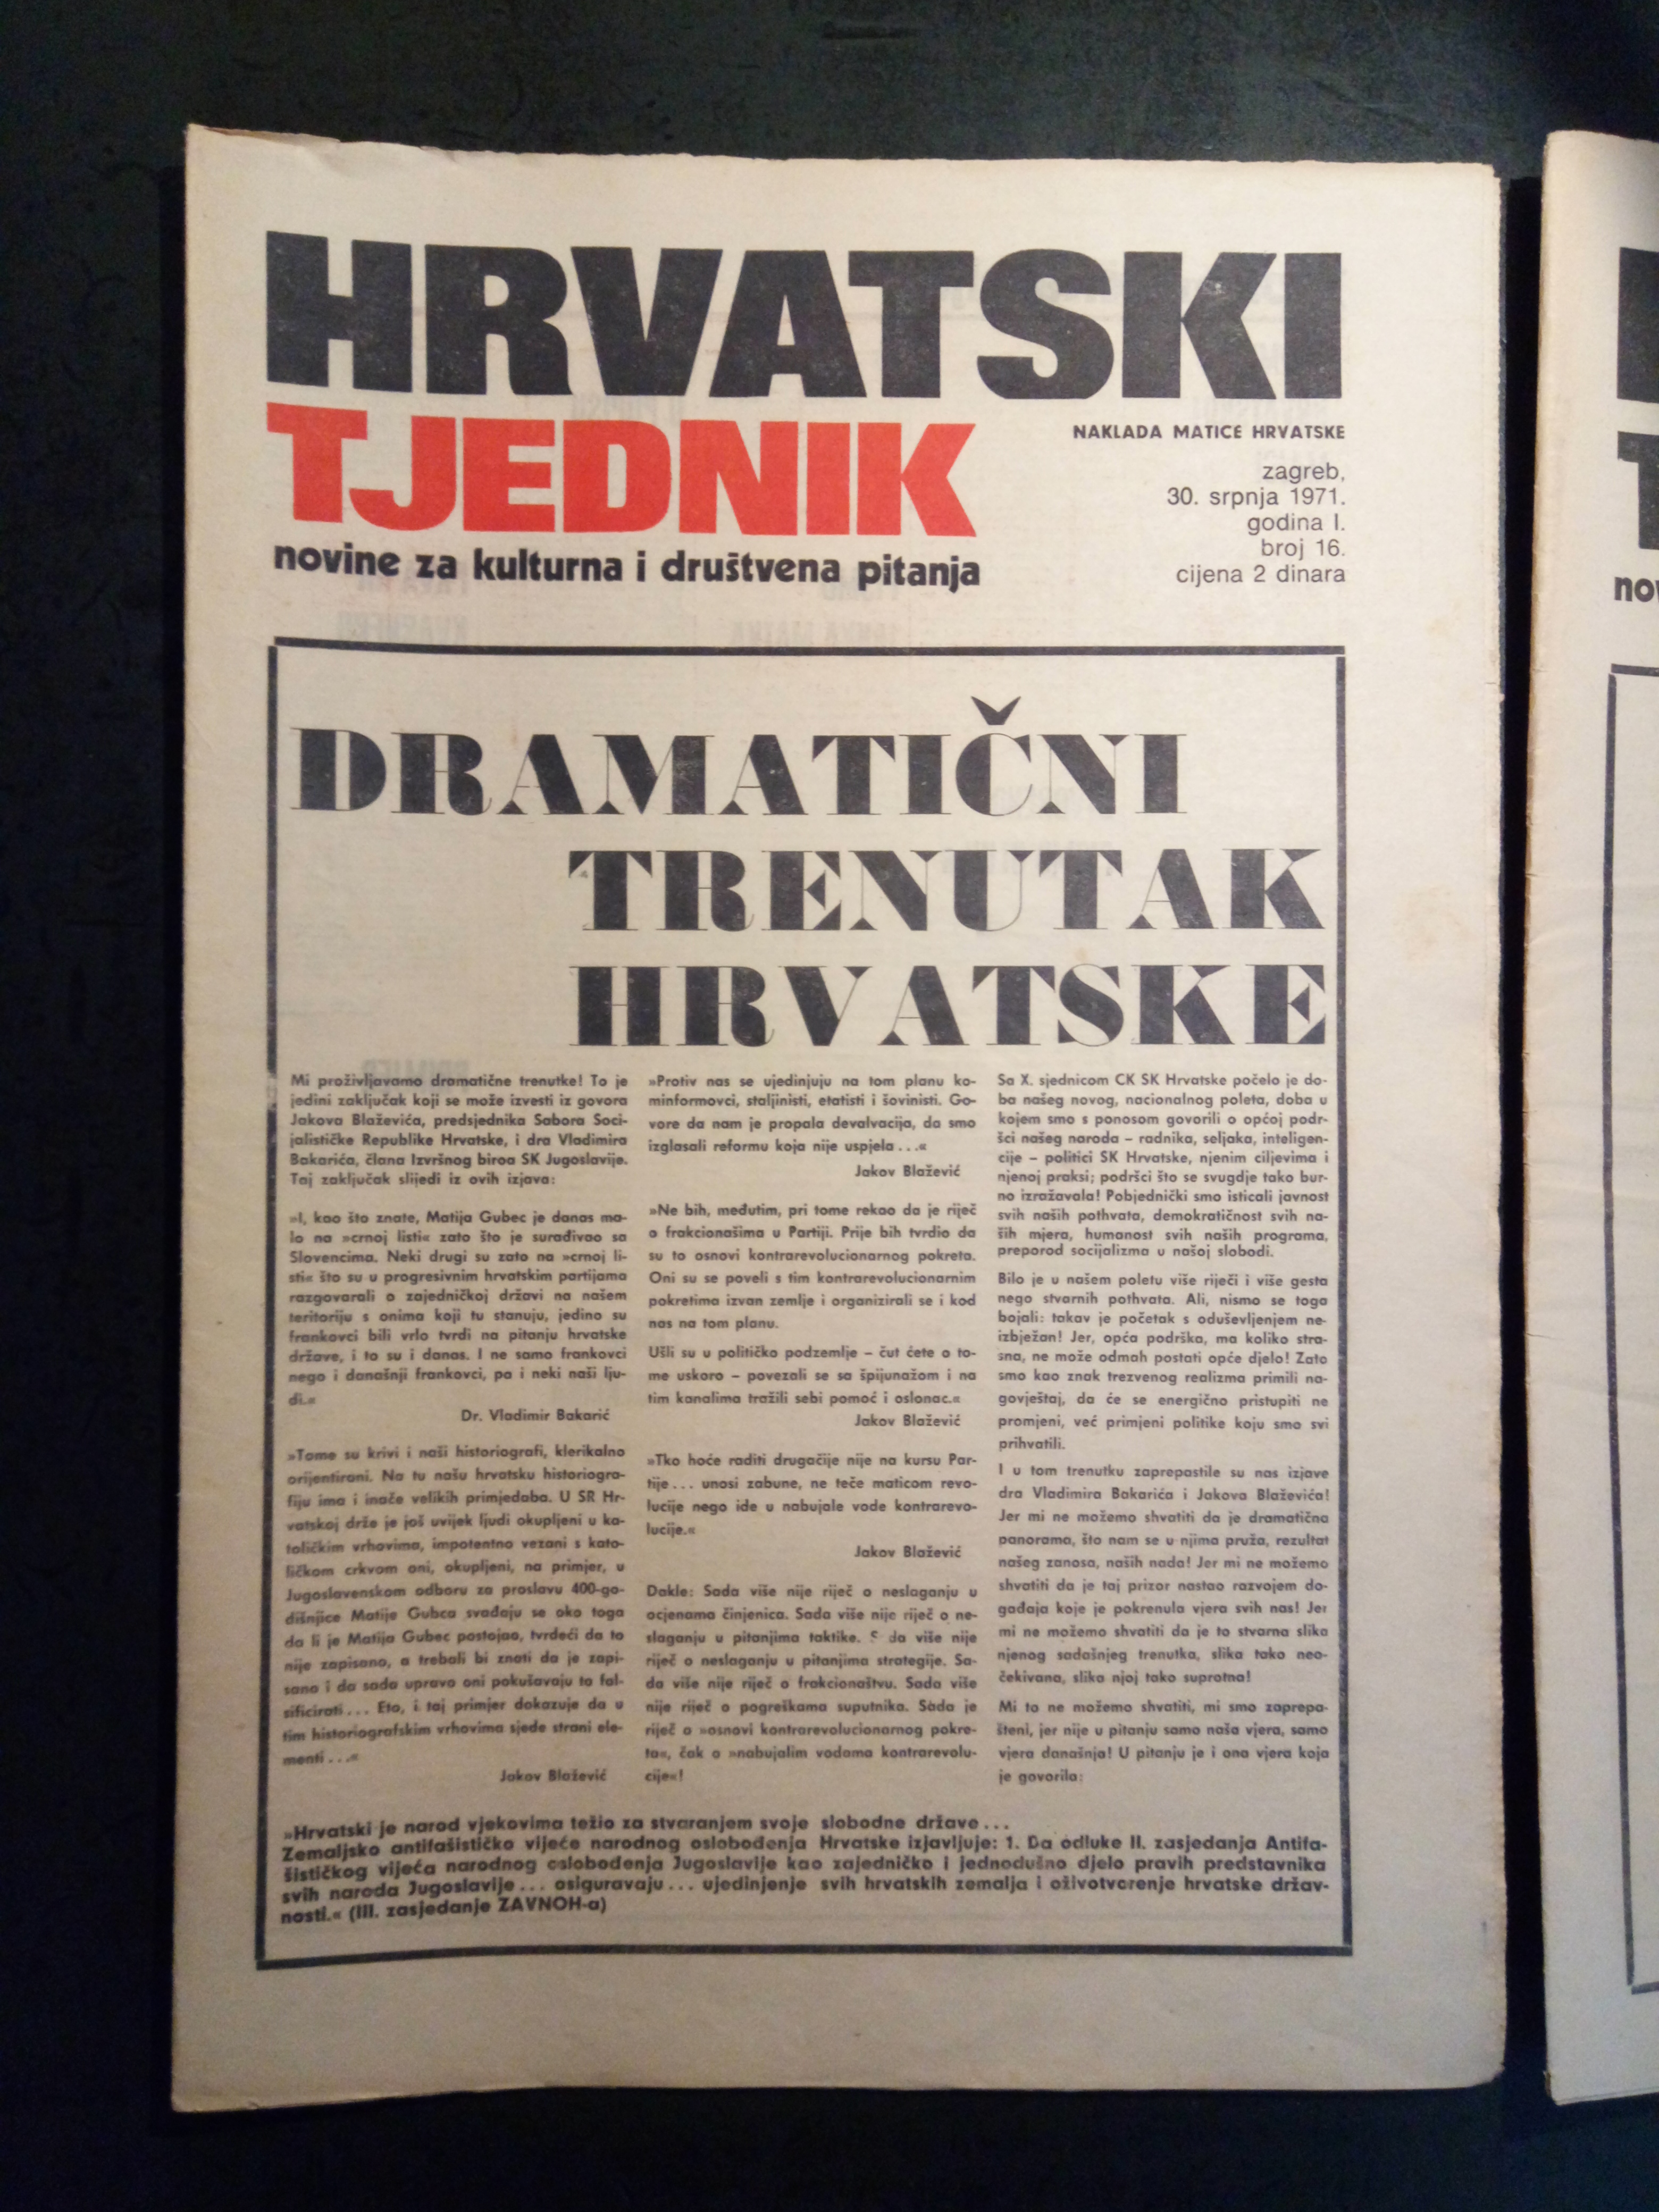 Cover page of the last published issue of the journal Hrvatski tjednik, 1971, Matica hrvatska Collection